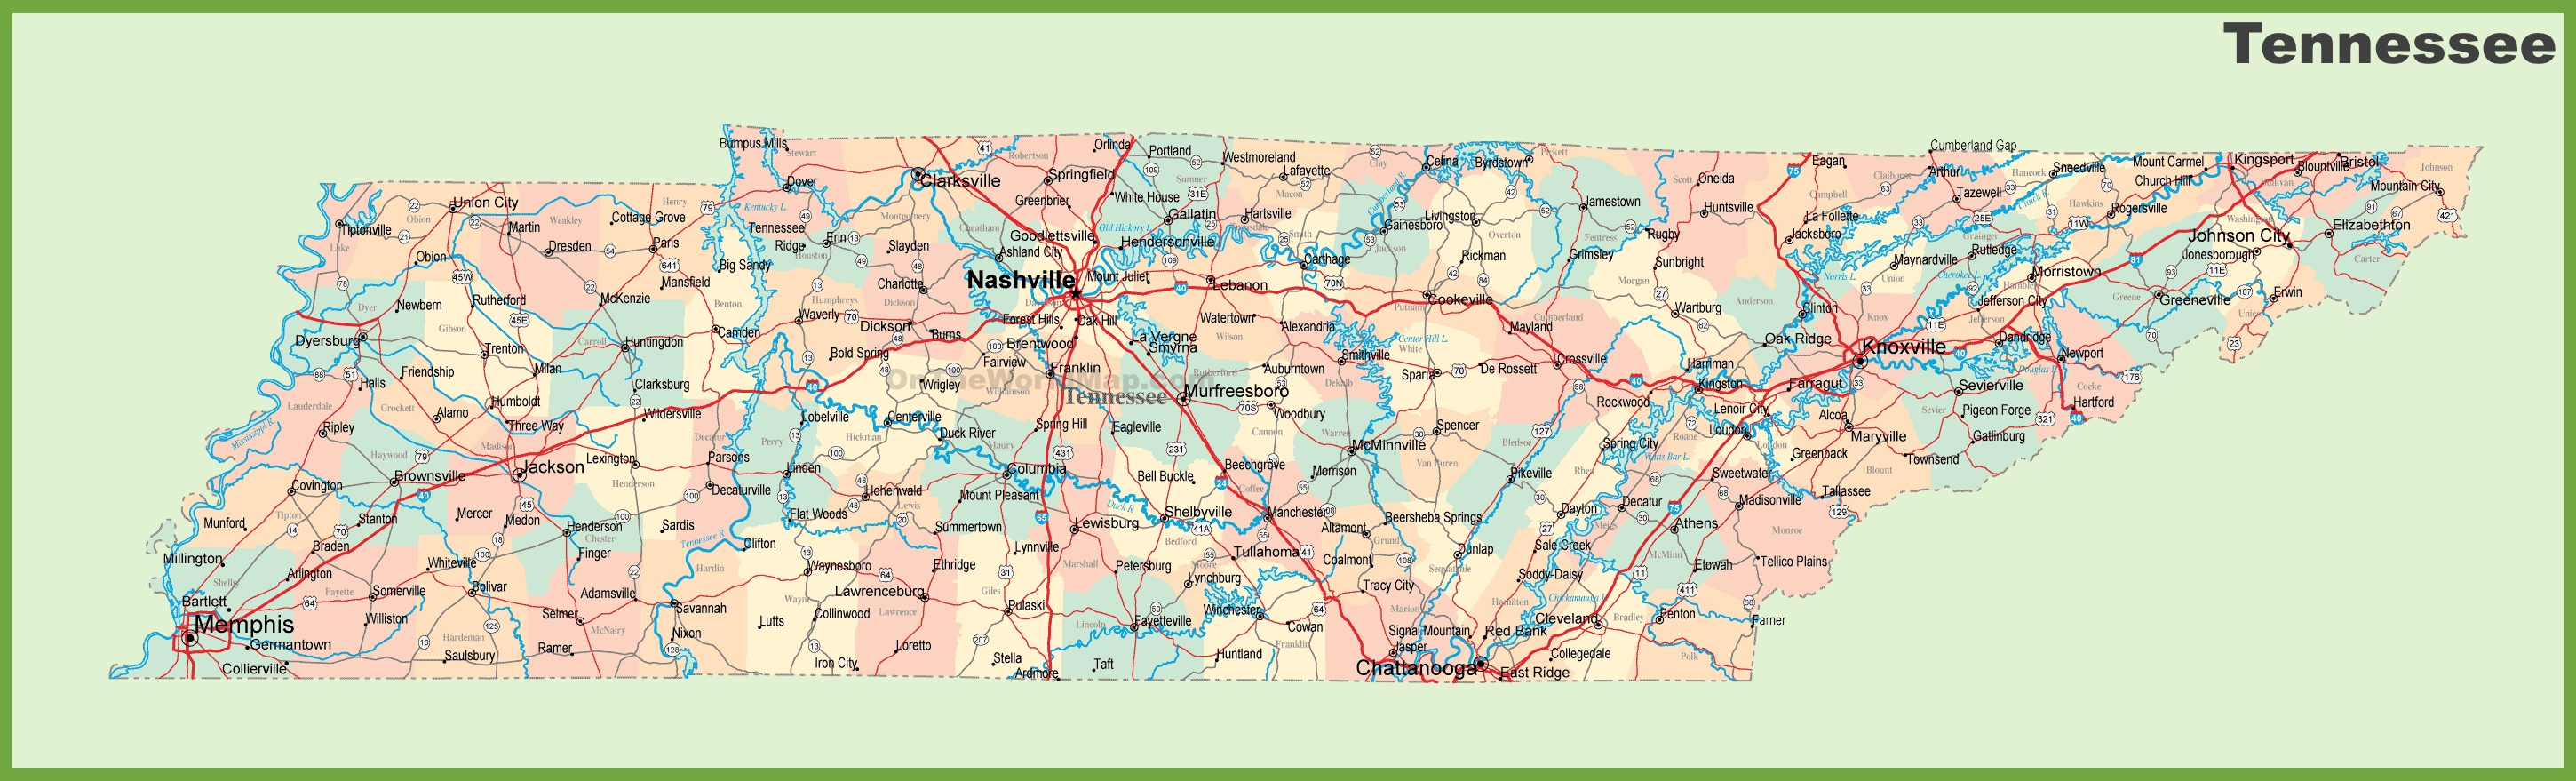 Tn State Map With Cities.Road Map Of Tennessee With Cities